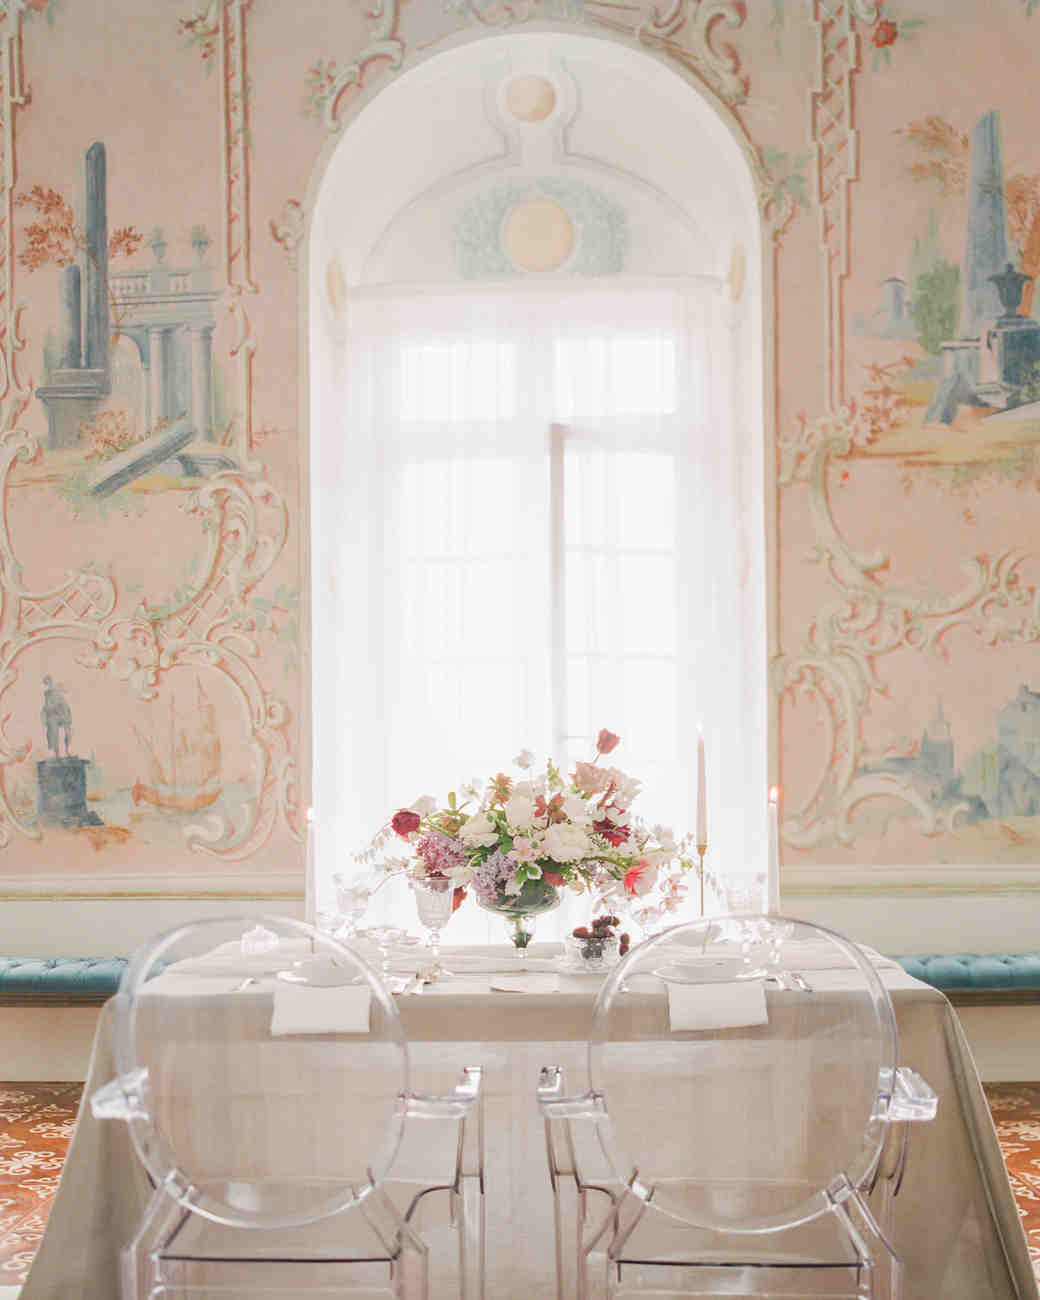 art-inspired wedding ideas fresco-inspired wall art